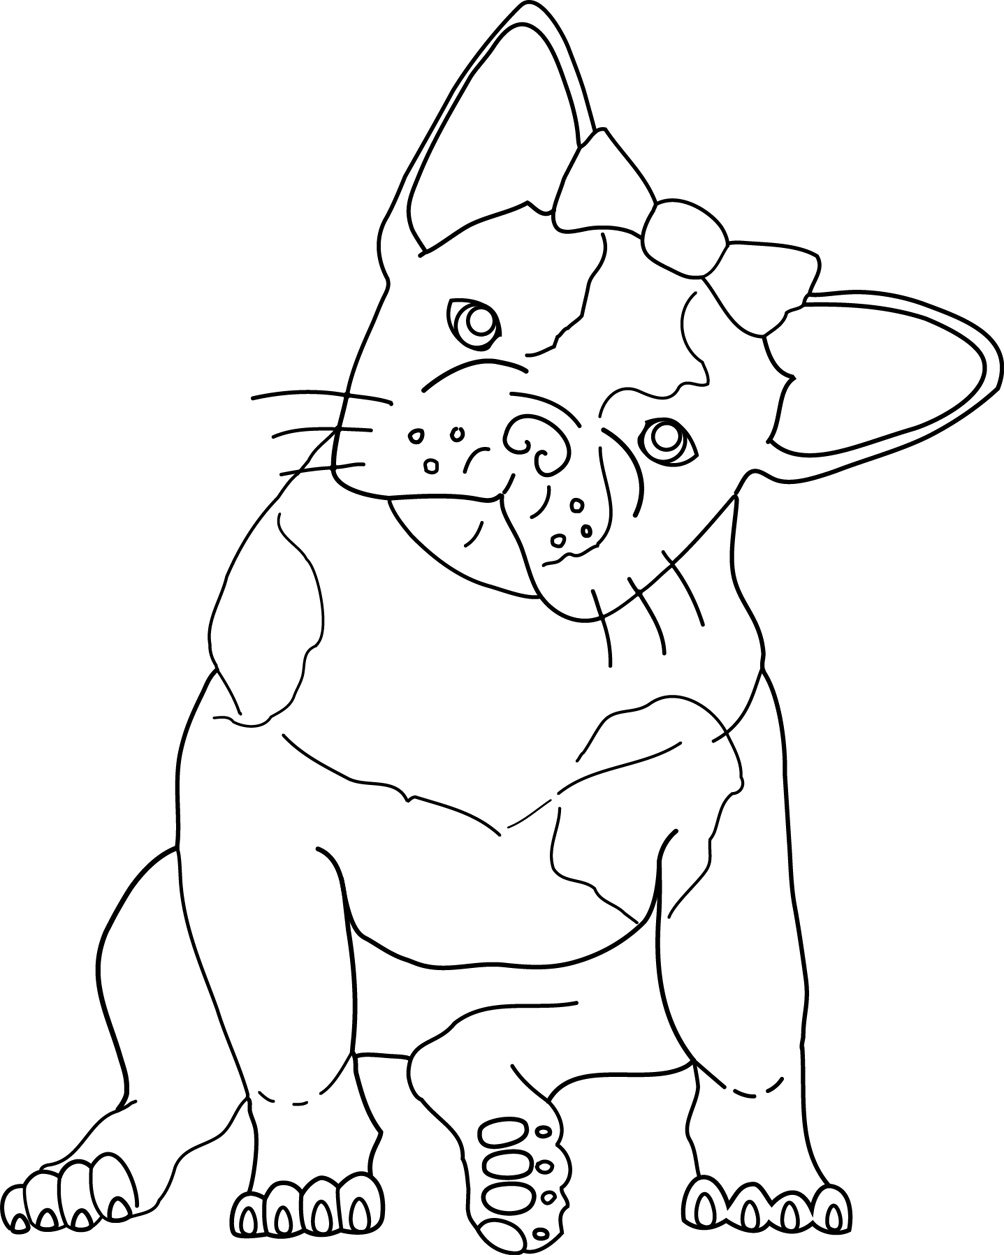 New Bulldog Coloring Pages 28 For Coloring Pages Online With